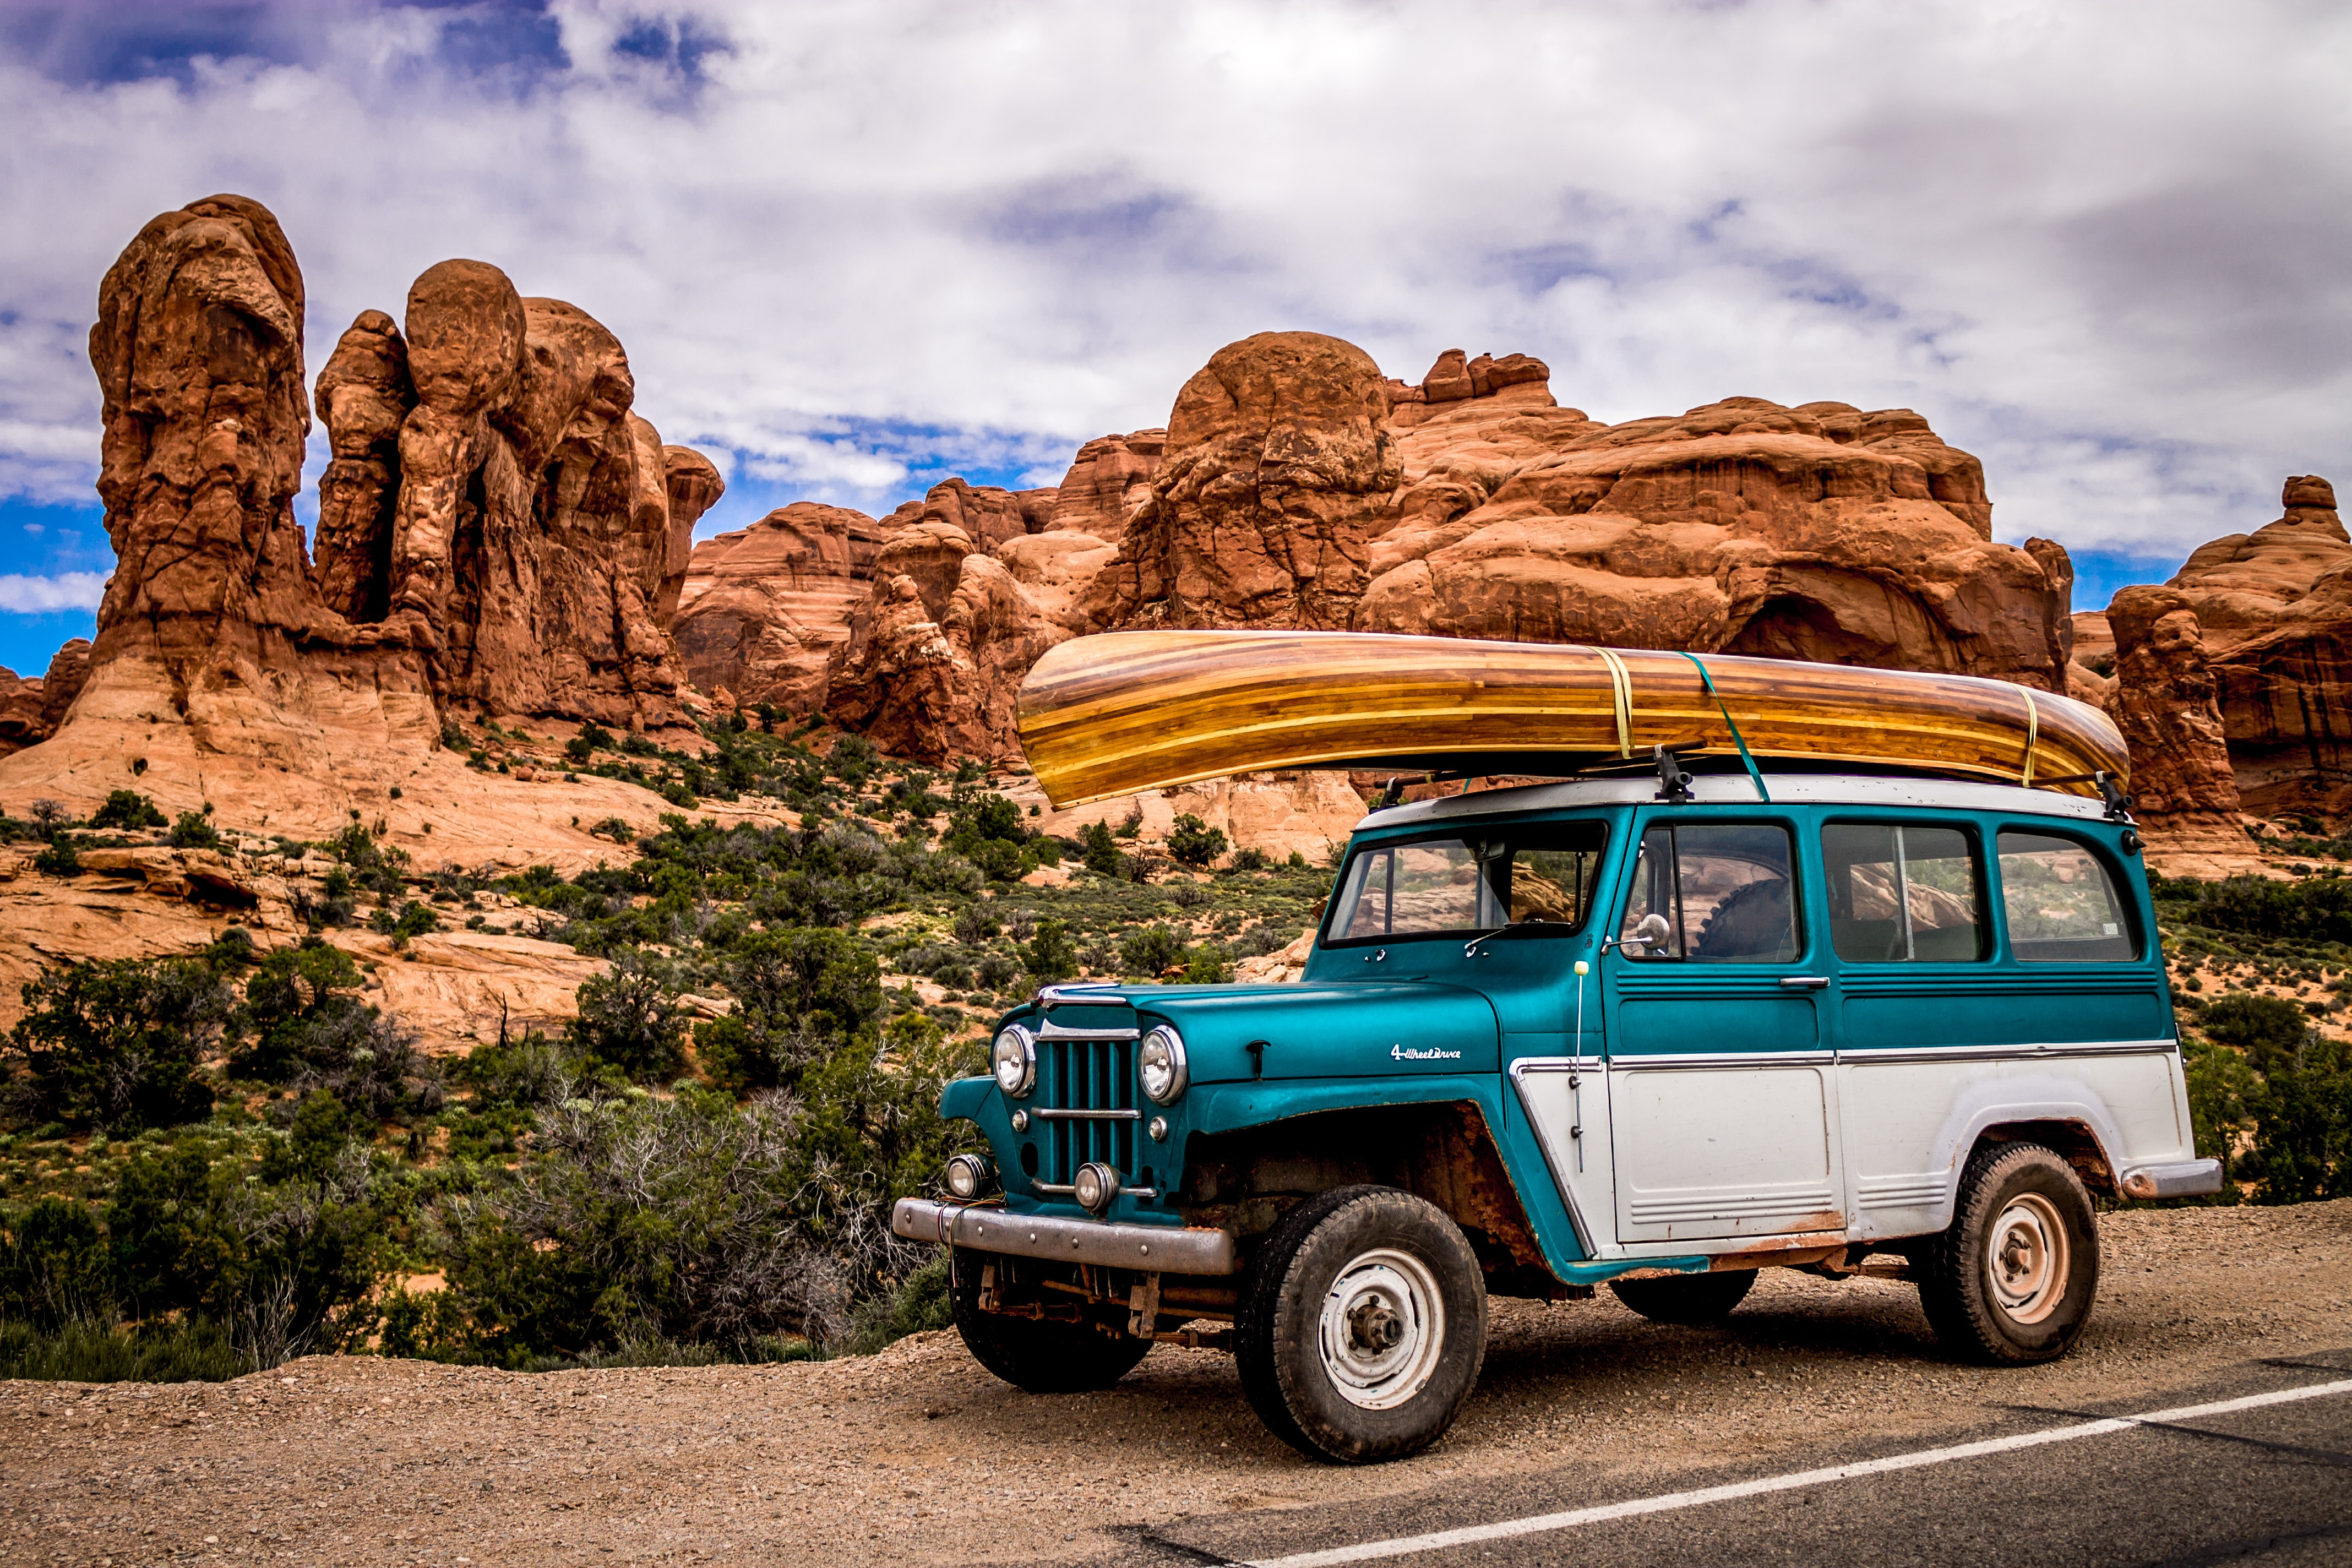 Retro jeep with wooden canoe on roof at side of road in Arches National Park